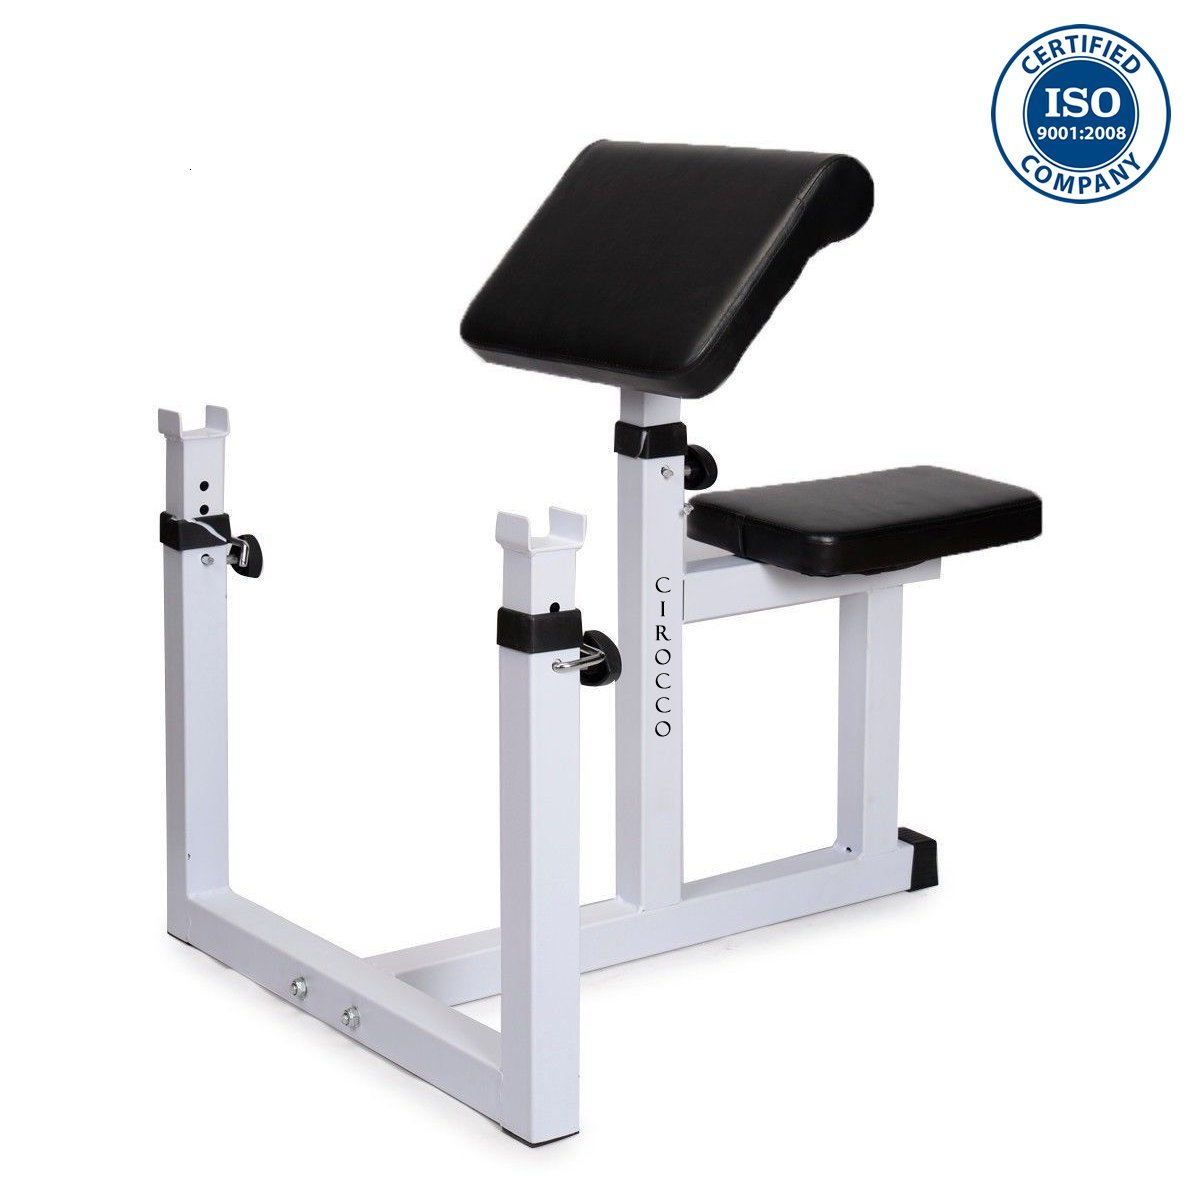 Schmidt Fitness Preacher Curl Weight Bench Press Seated Arm Rest Curling Biceps Barbell Dumbbell Adjustable Seat Bar Machine Isolated Station For Commercial Home Gym Fitness Exercise Training Workout